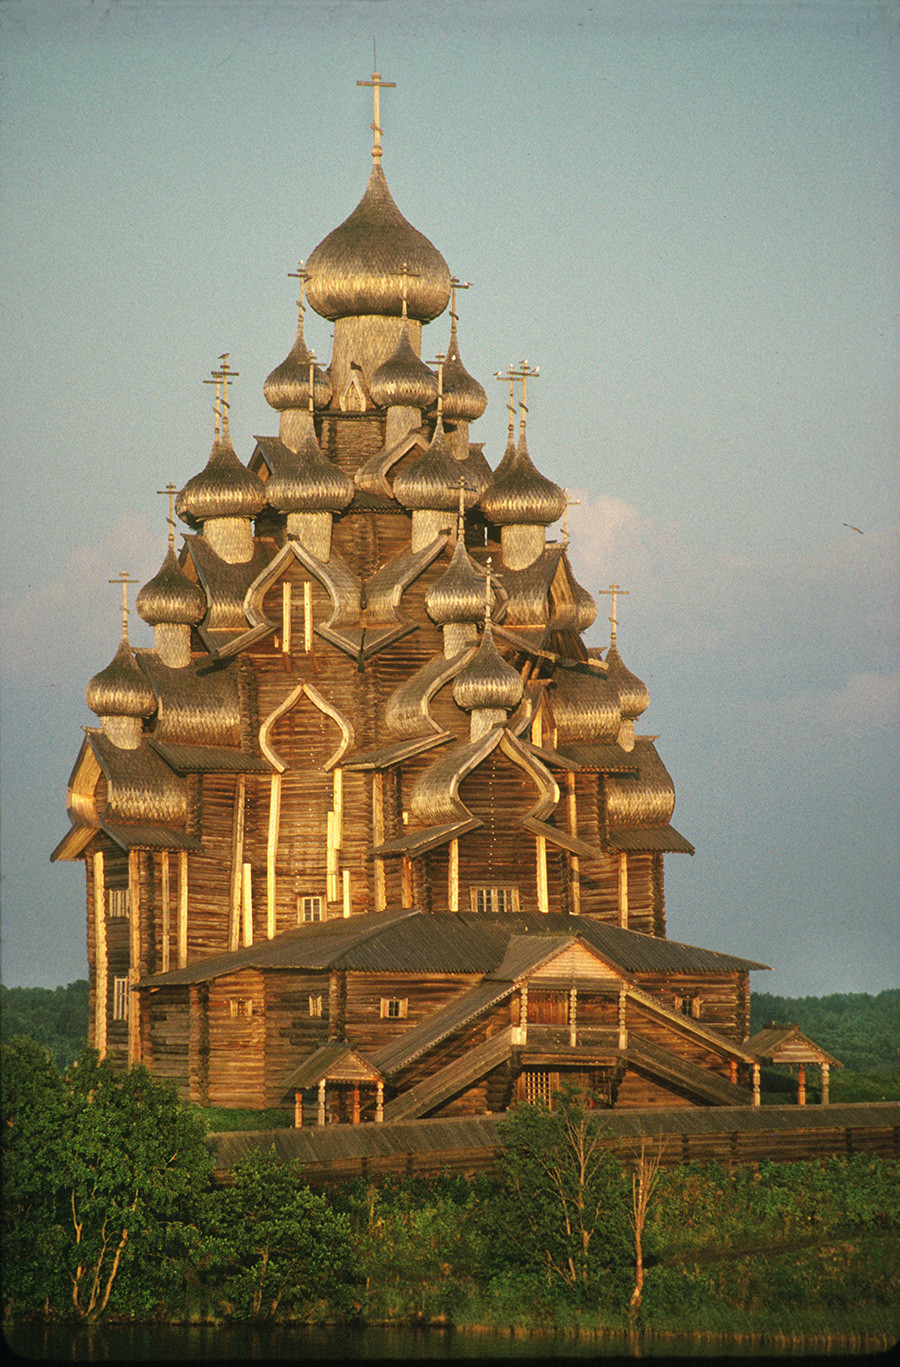 Church of the Transfiguration. Northwest view in late evening sunlight after thunderstorm. August 6, 1991